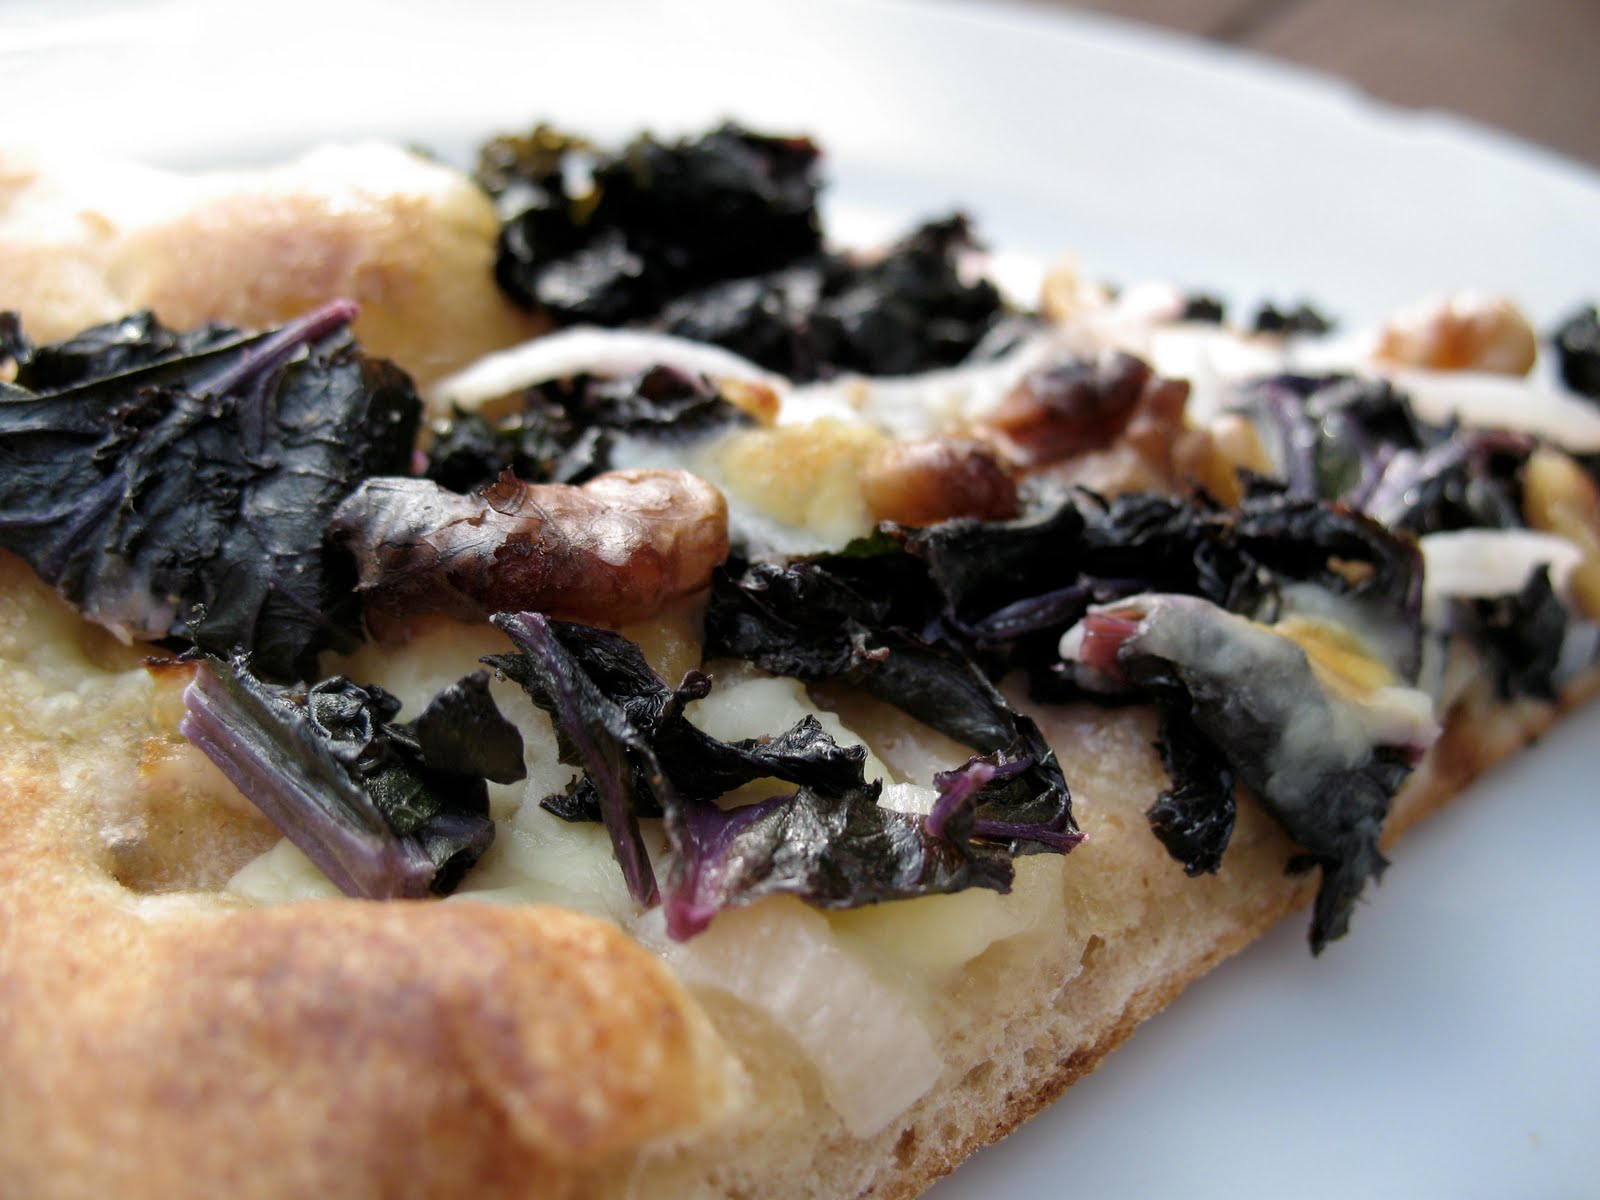 Kale Pizza with Blue Cheese and Walnuts